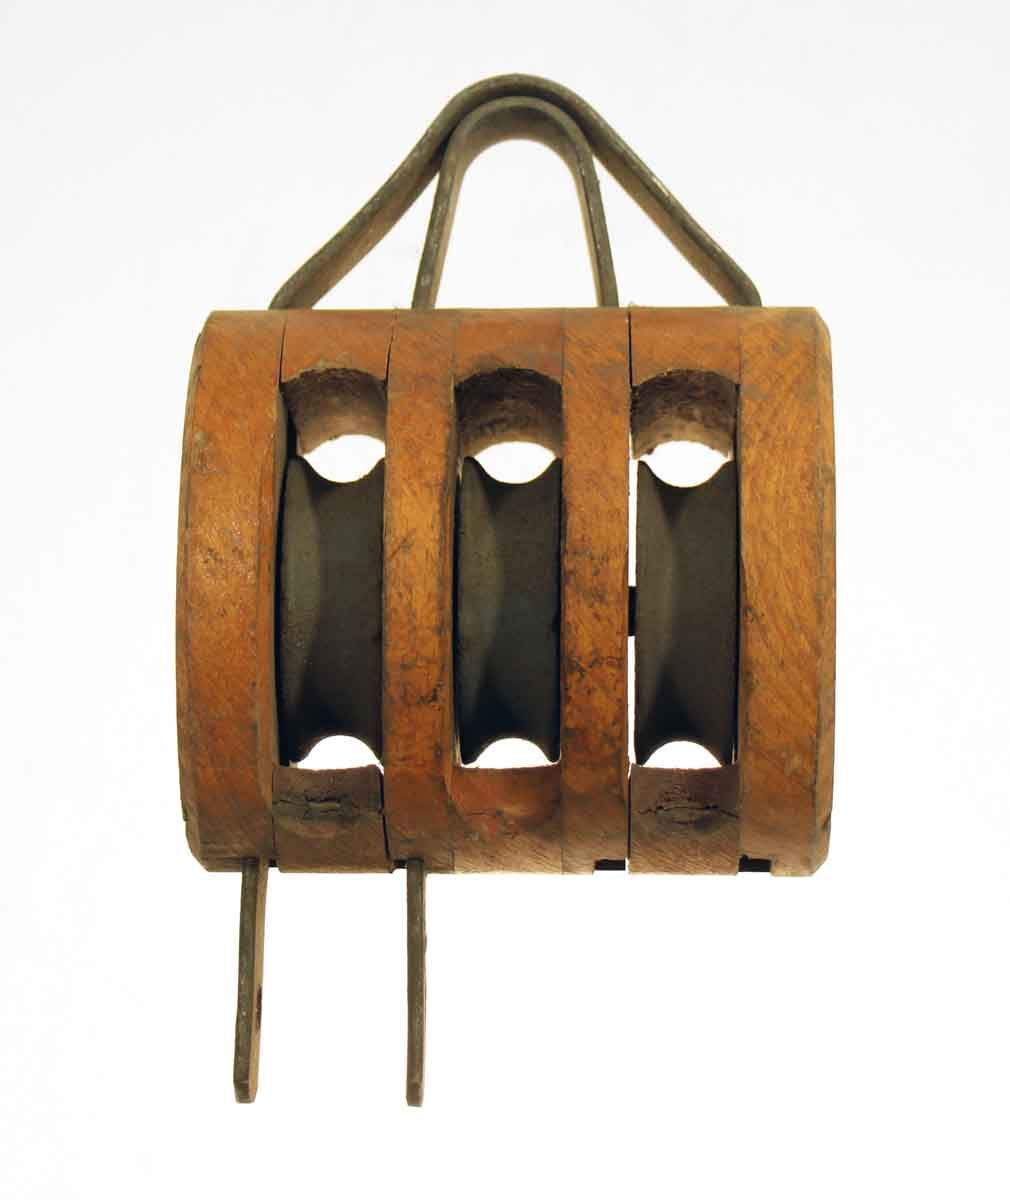 Wooden Pulley with Metal Wheels